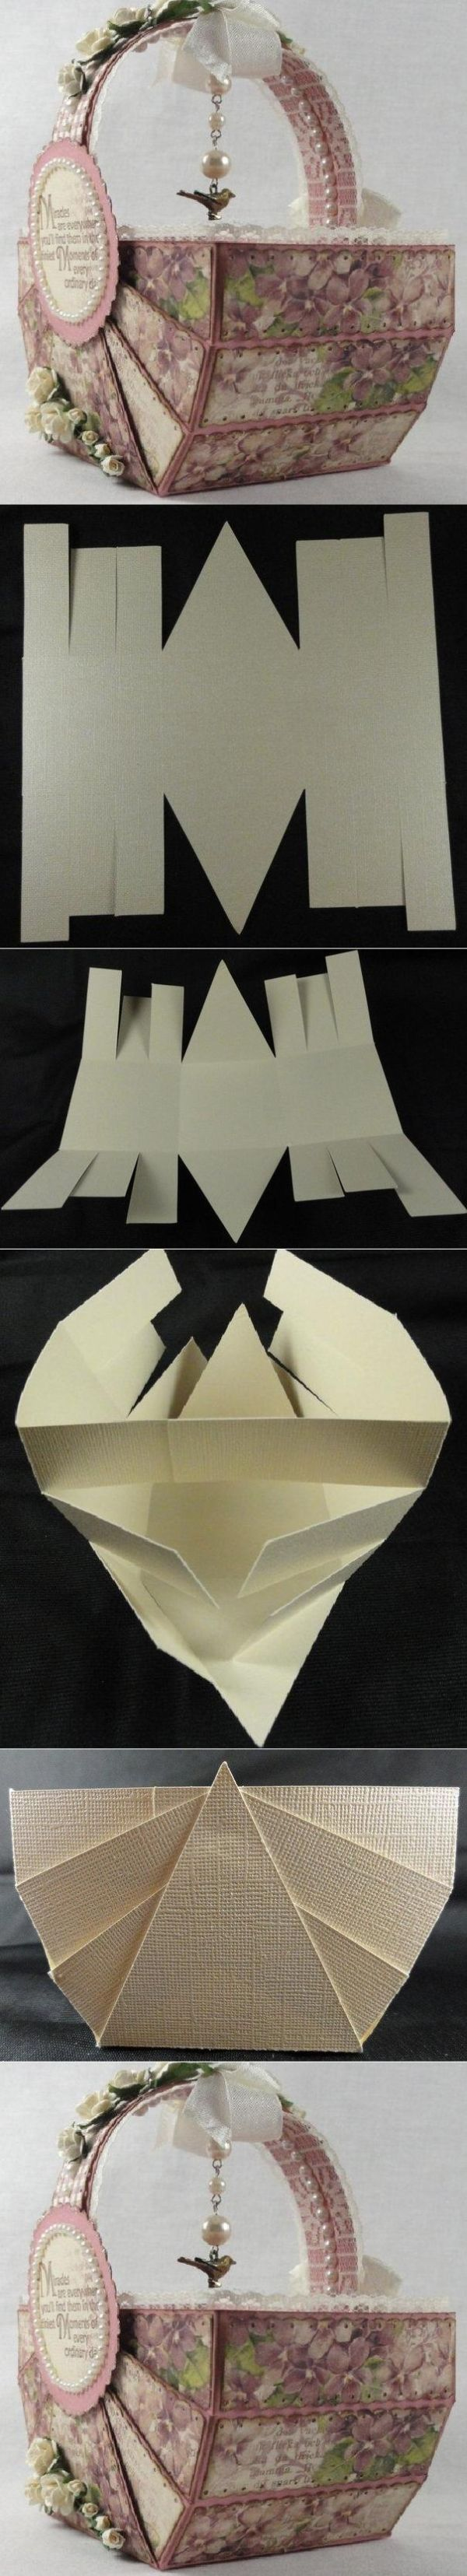 Paper Basket PATTERN change colours for winter or christmas